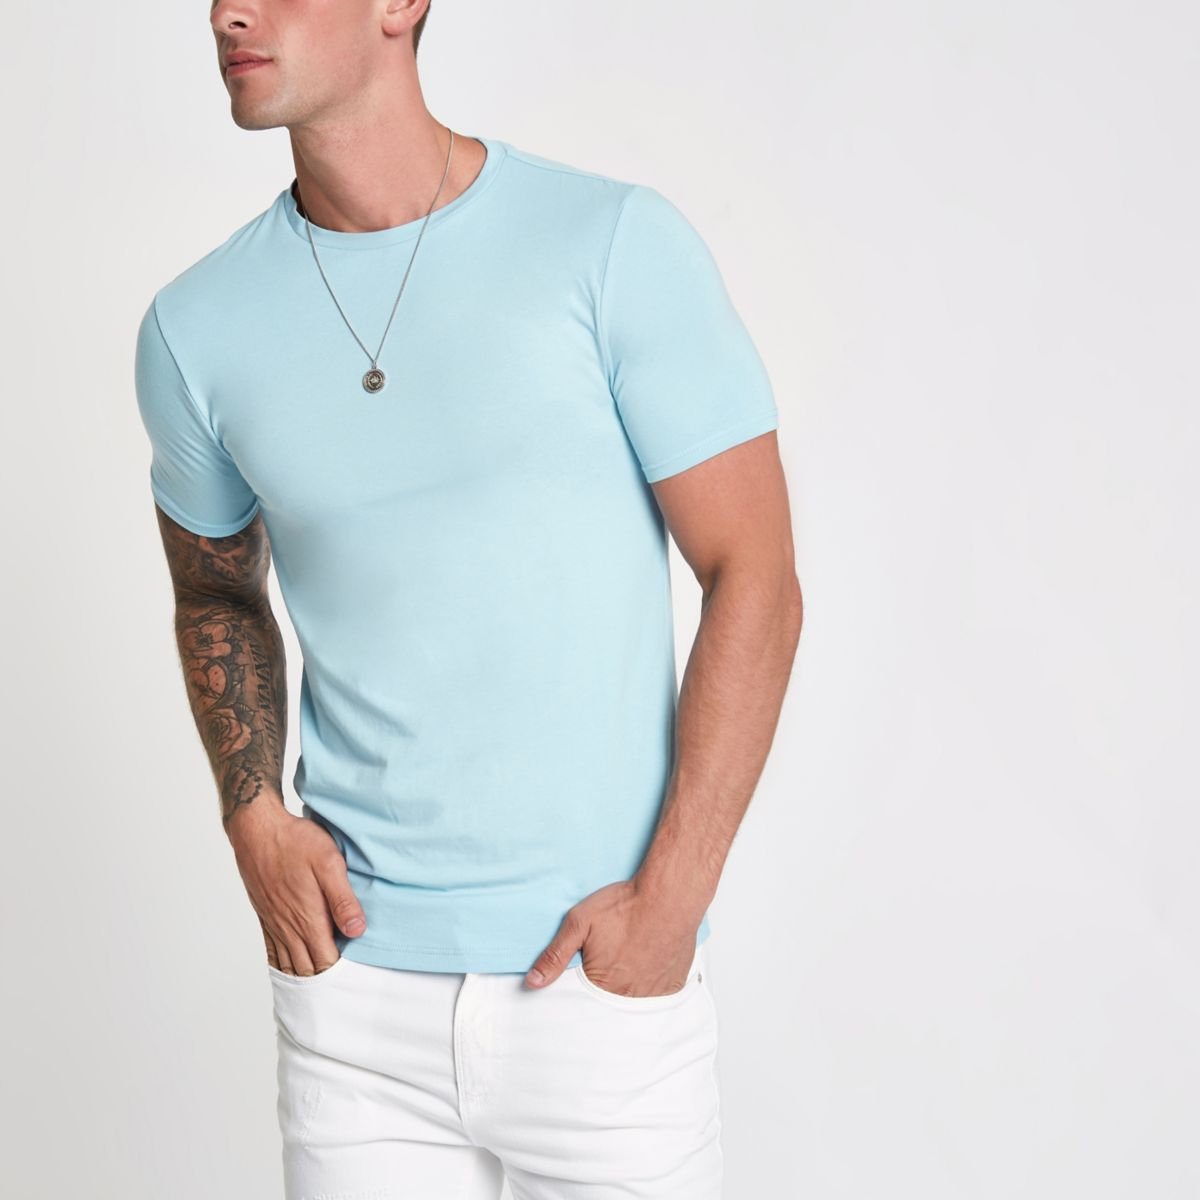 Light blue muscle fit short sleeve T-shirt